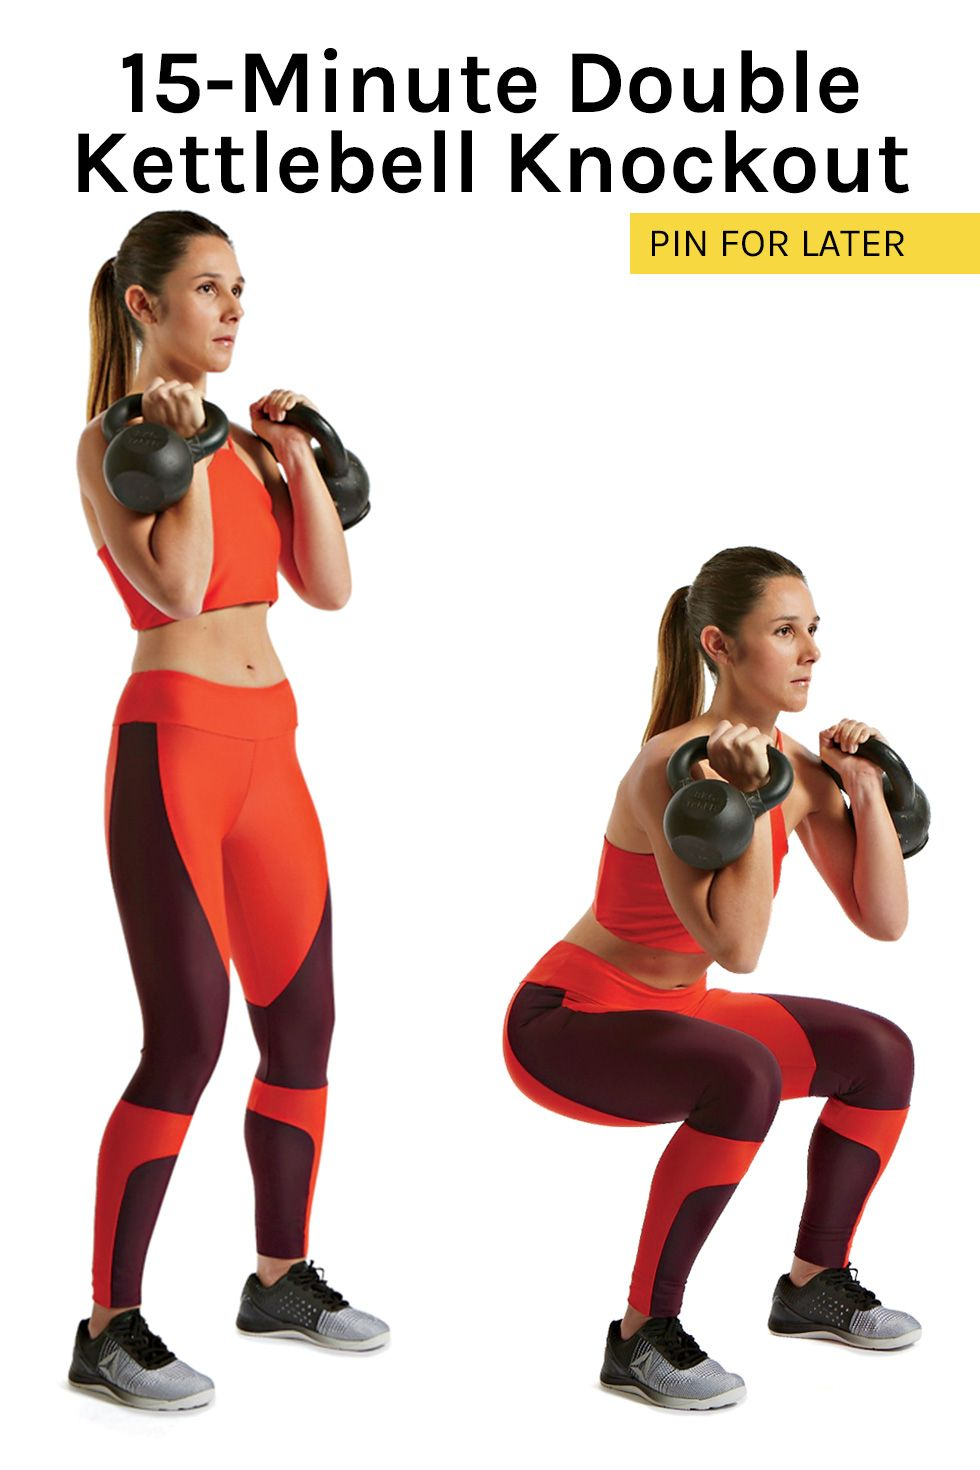 This 15-Minute Double Kettlebell Workout Will Sculpt Your Bod Fast